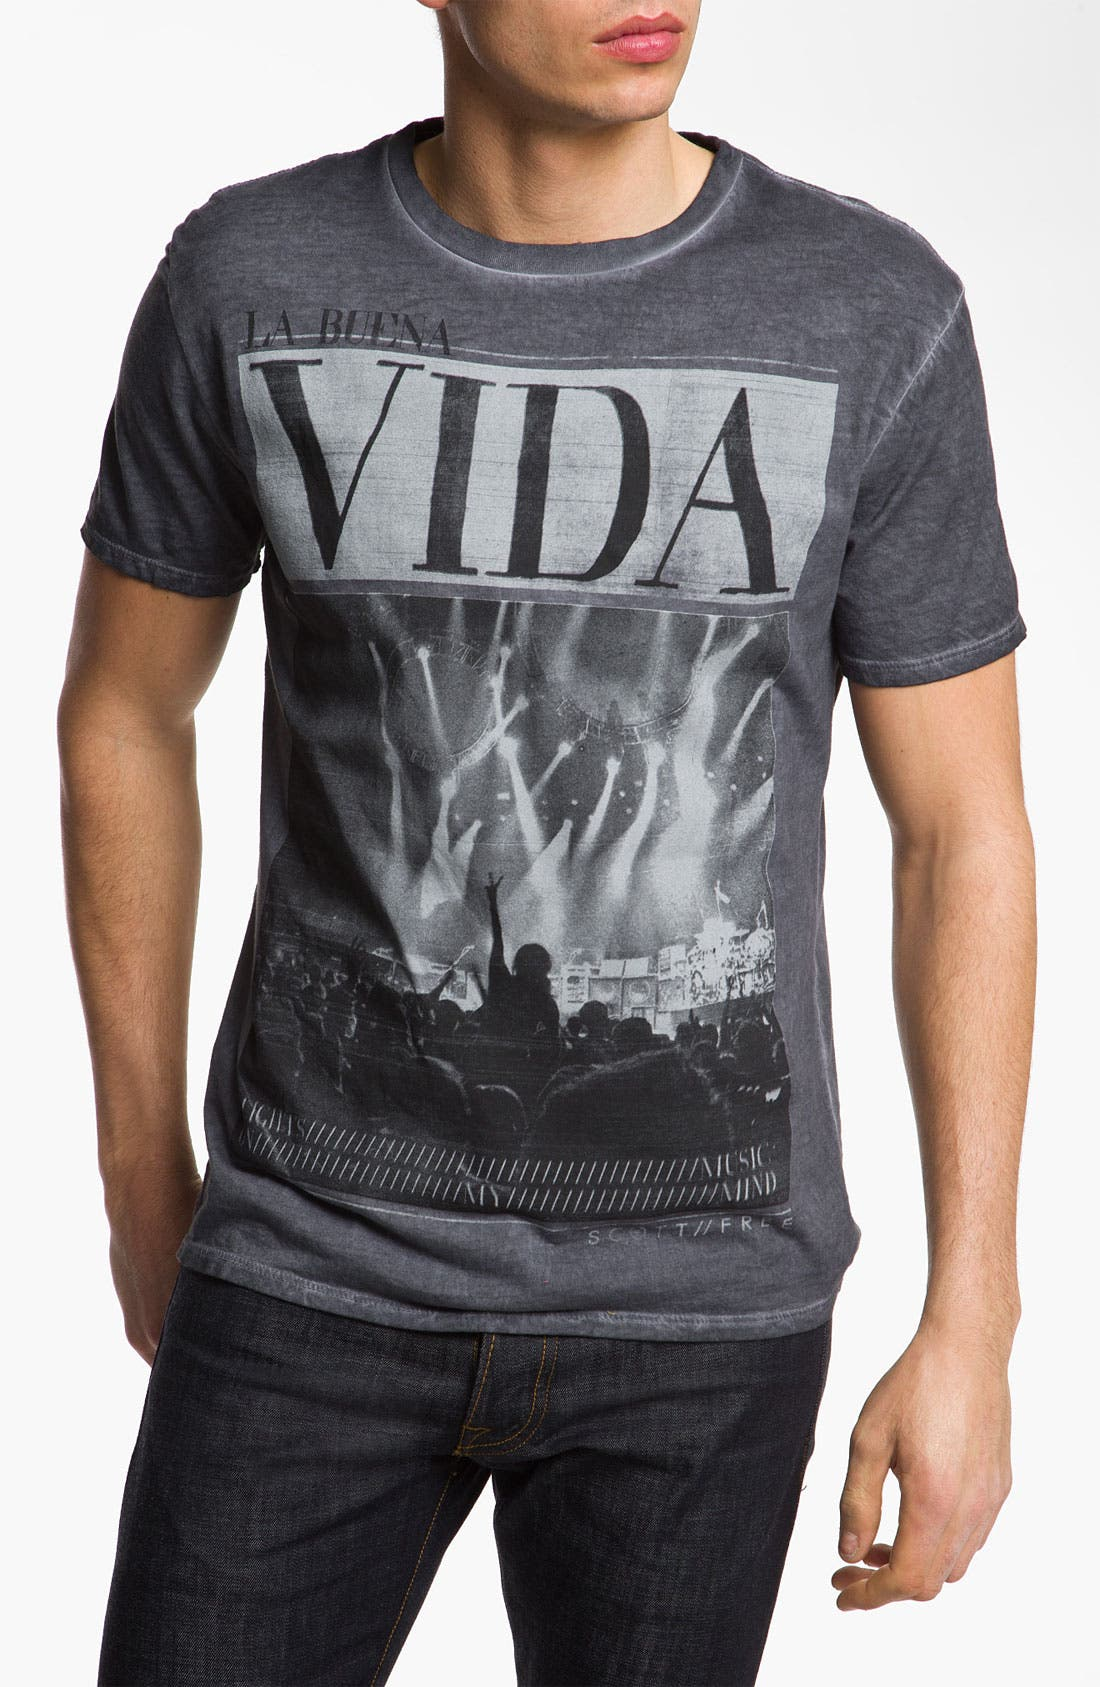 Alternate Image 1 Selected - Scott Free 'Vida' Graphic T-Shirt